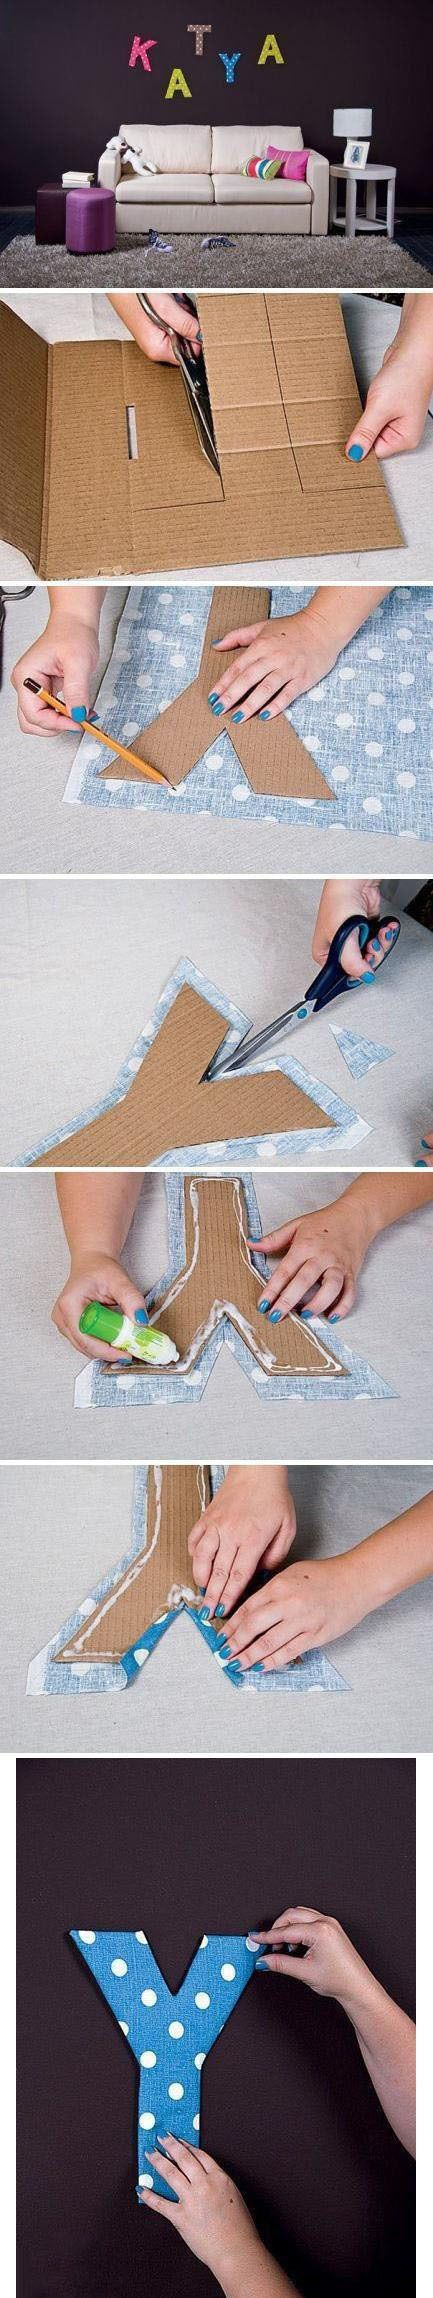 Fabric and Cardboard Wall Letters DIY. This I have got to try